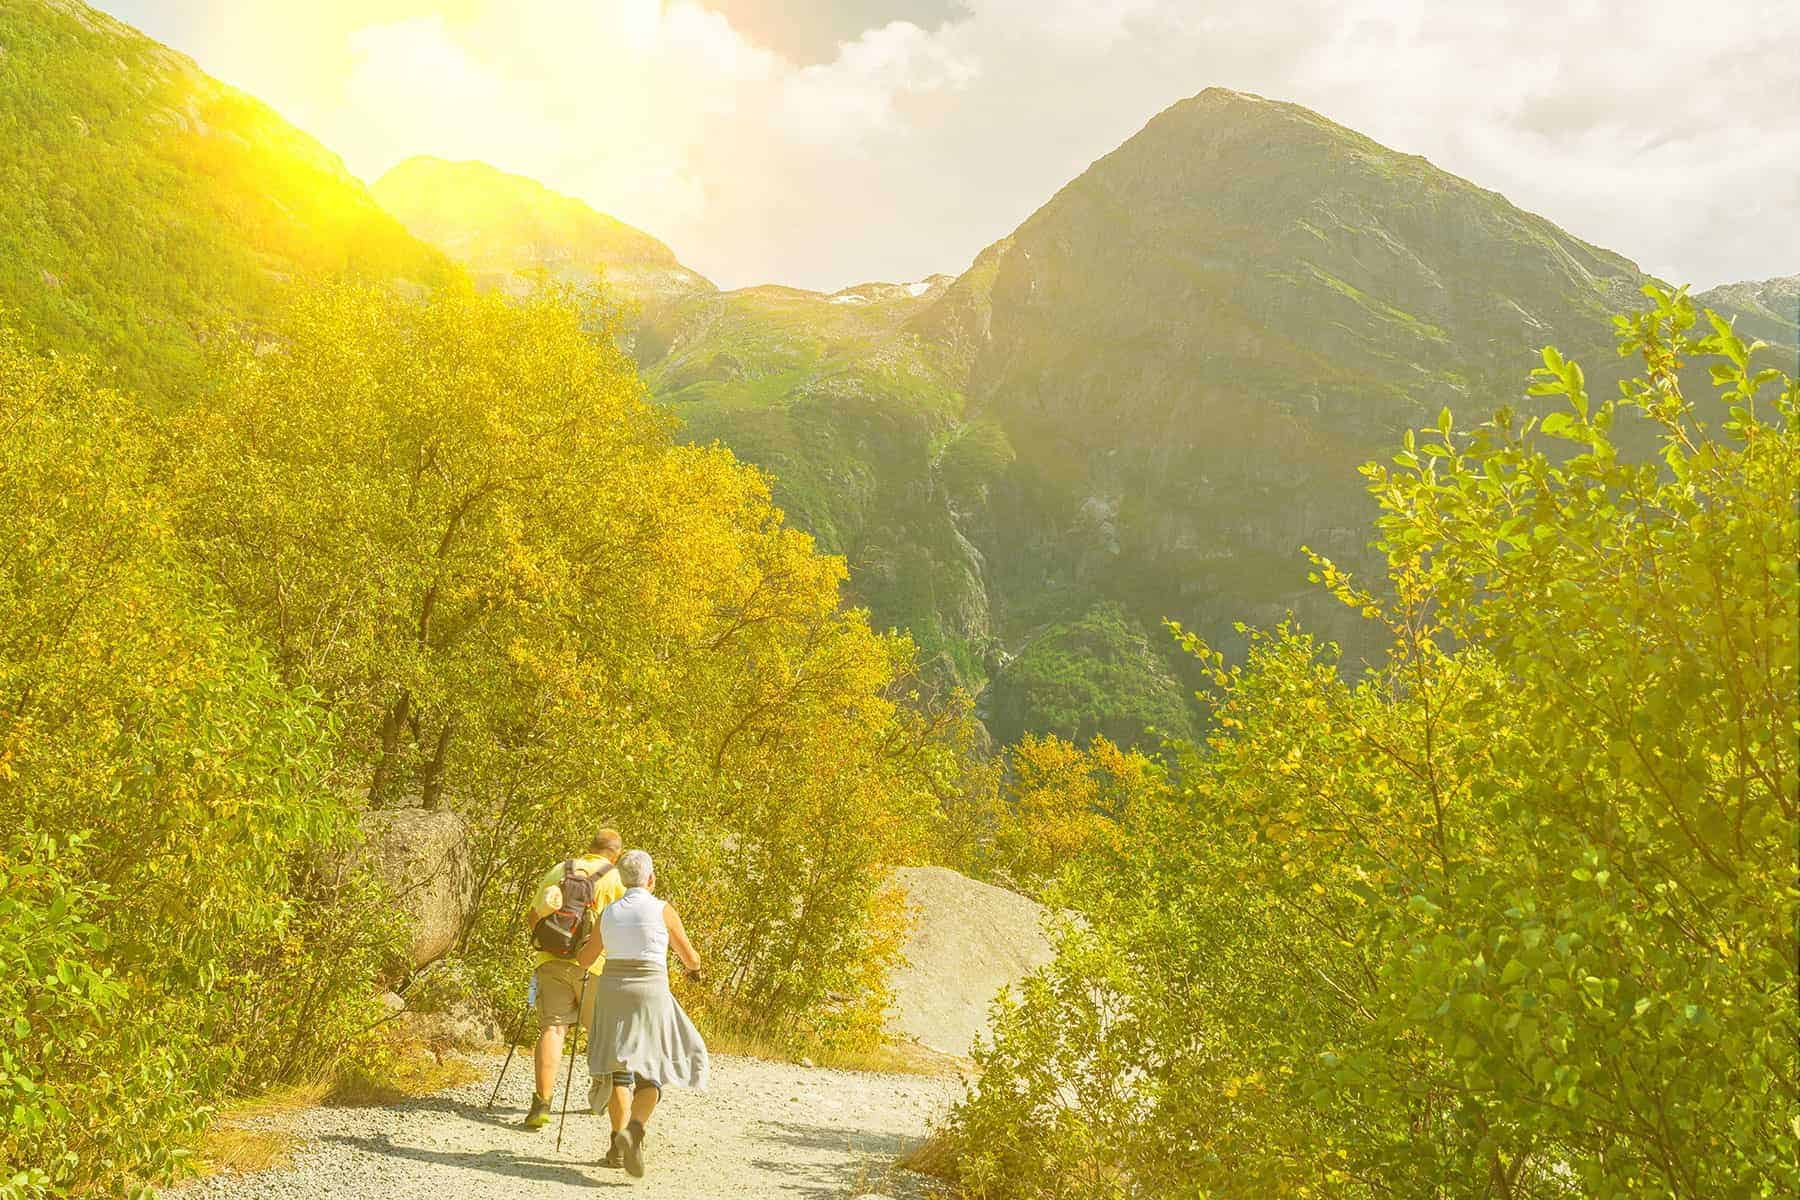 Keeping healthy in retirement - a retired couple walking in the mountains on a bright sunny days